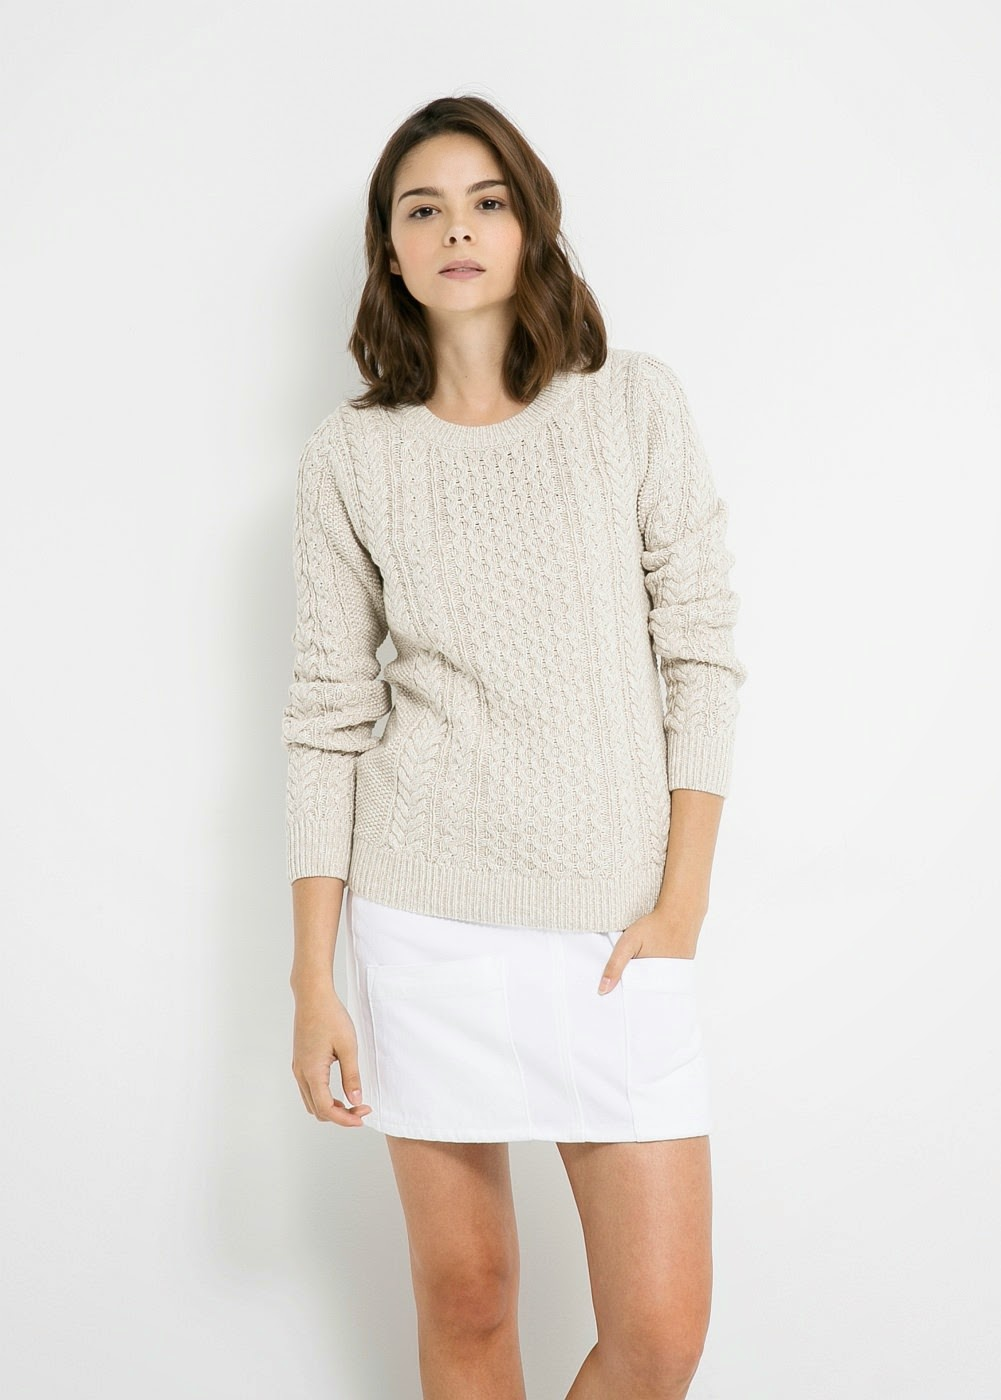 great winter sweater for anyone with psoriasis